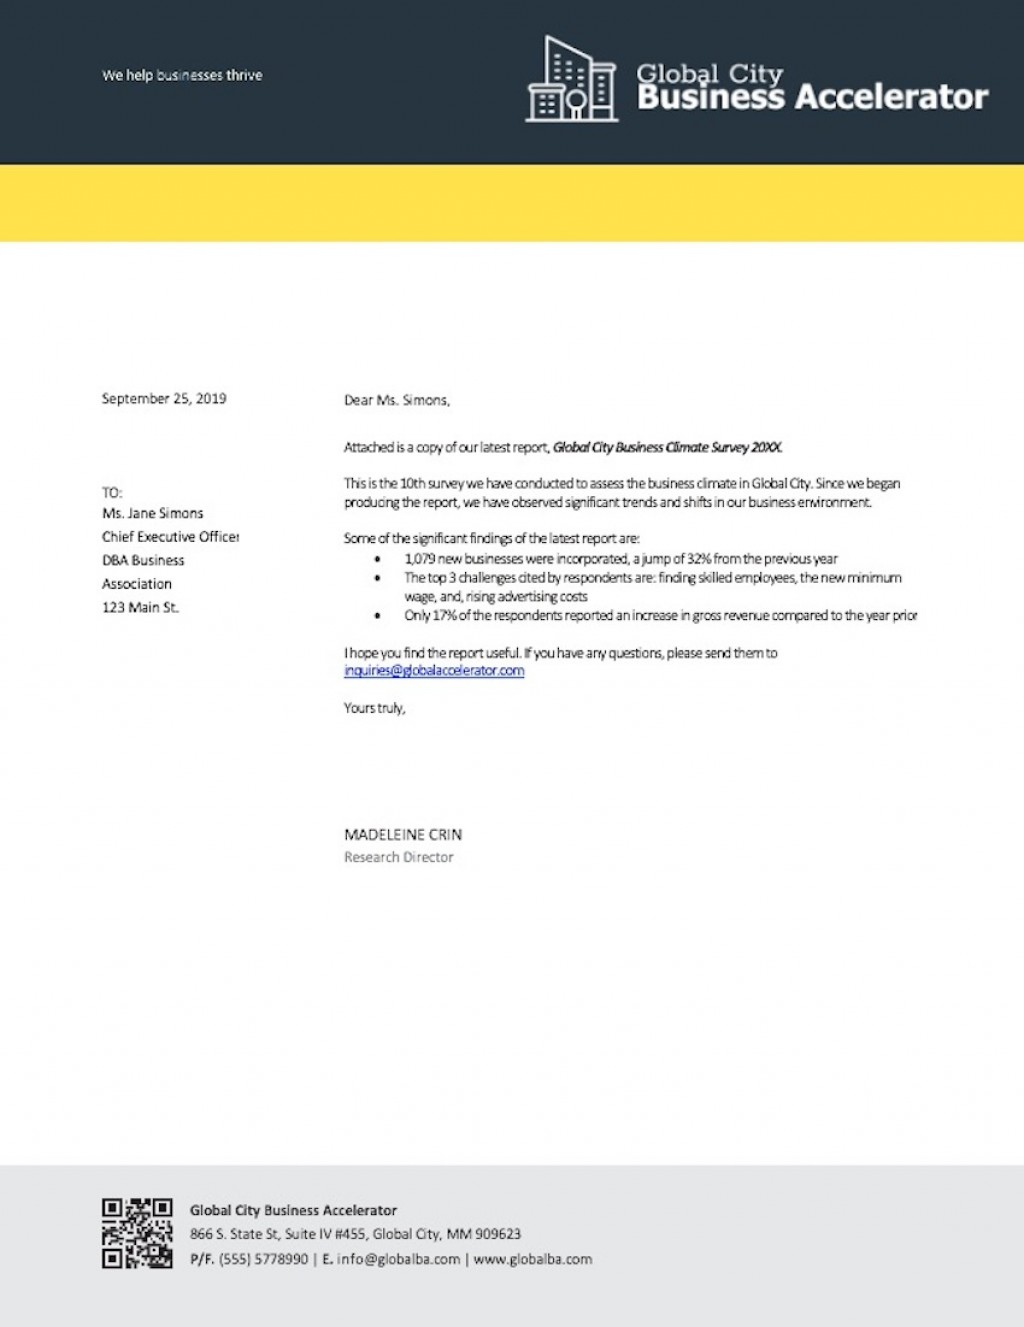 006 Exceptional Letter Template Microsoft Word Concept  Naval Format 2010 2007Large